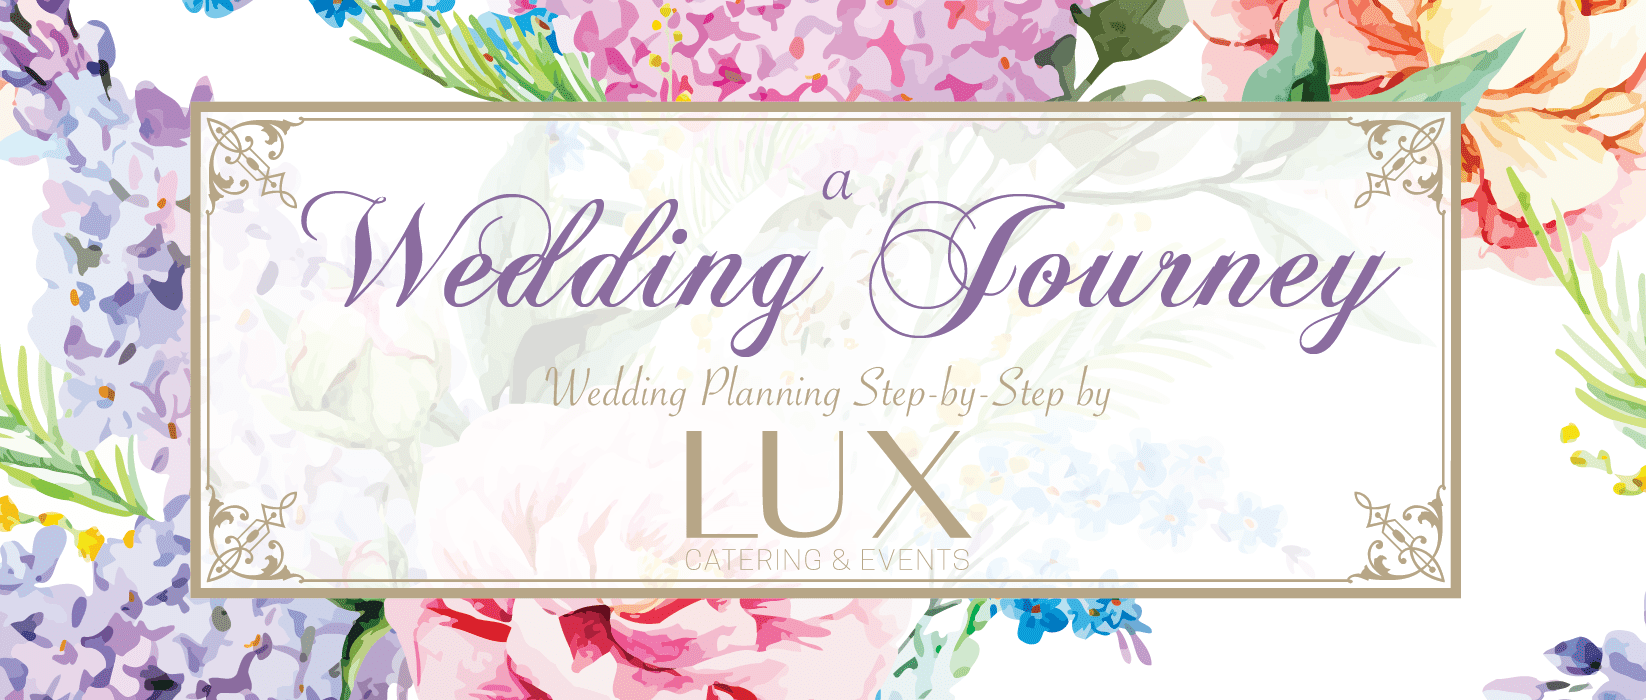 Wedding planning consultation help from LUX Catering & Events - Utah's premier wedding planners and wedding caterers  Using a Wedding Planner: What to Expect at your first Consultation weddingjourney LUX 01